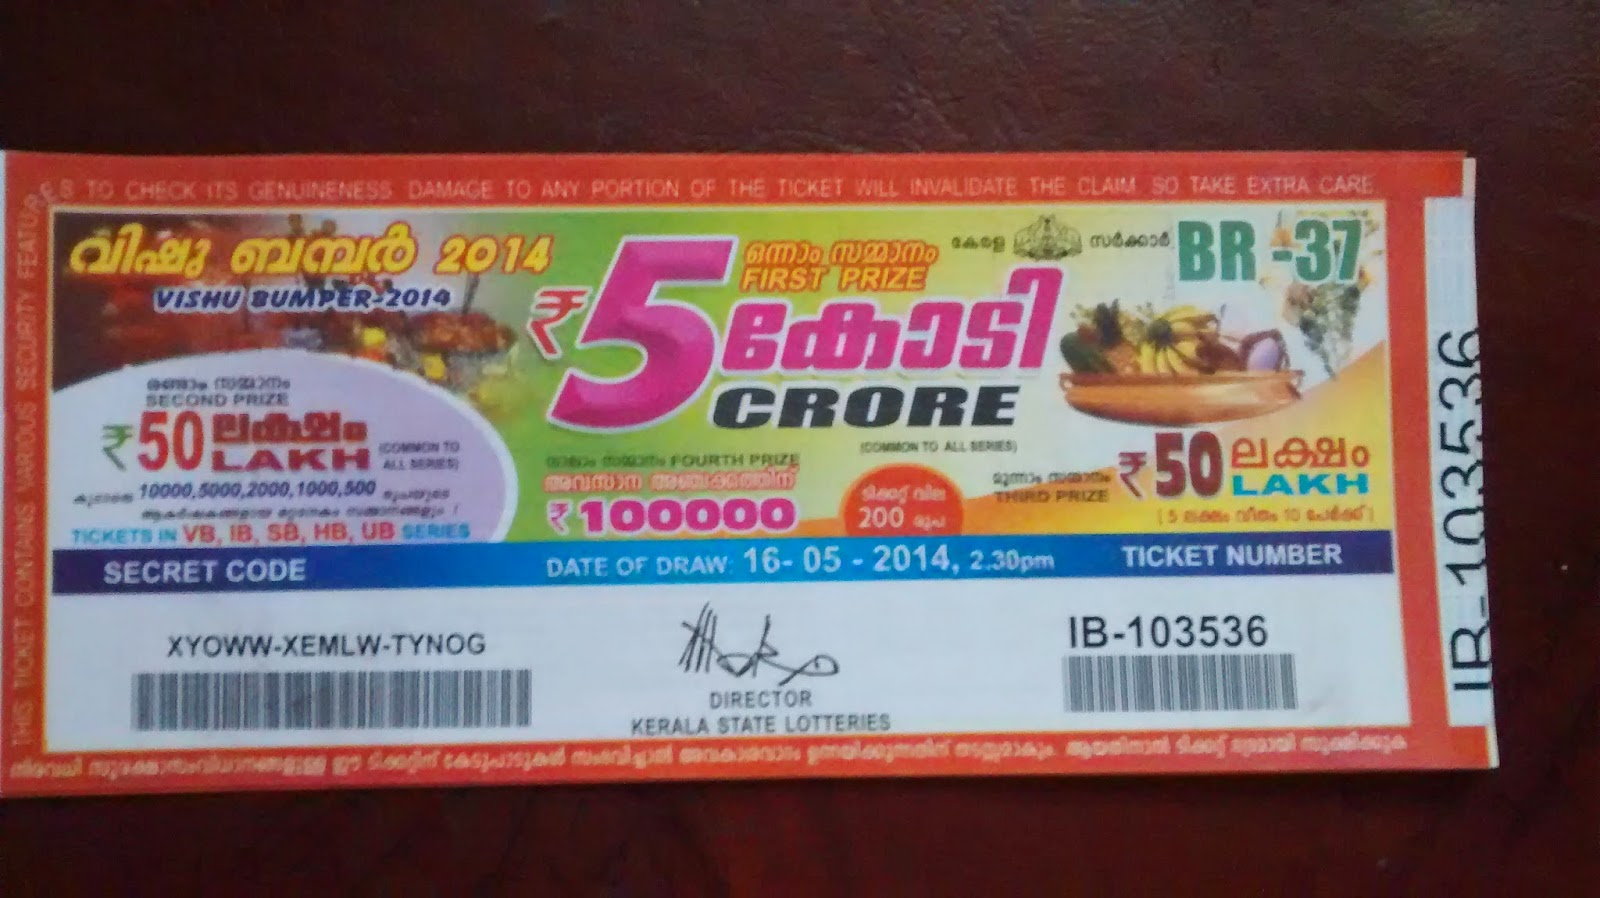 Vishu bumper 2014 sale started kerala lottery prize stucture thai